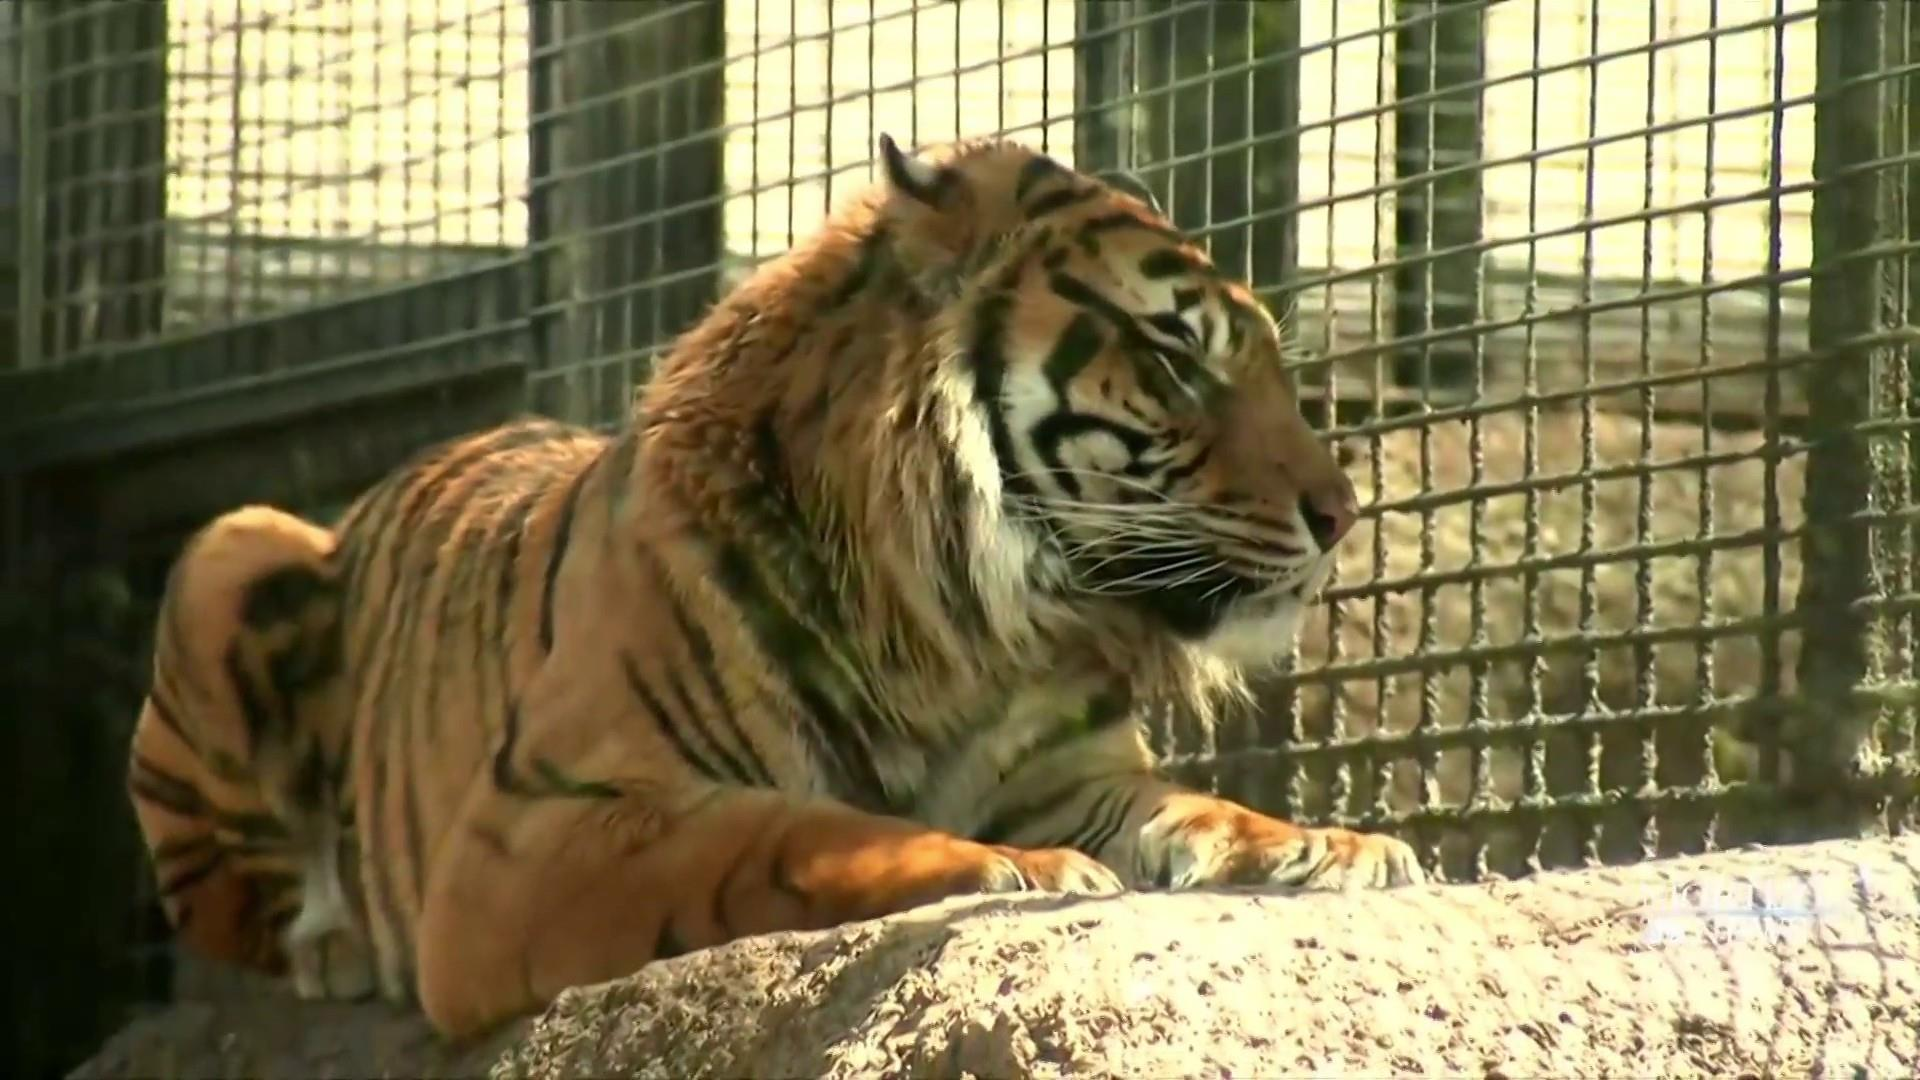 Zookeeper recovering in the hospital after tiger attack